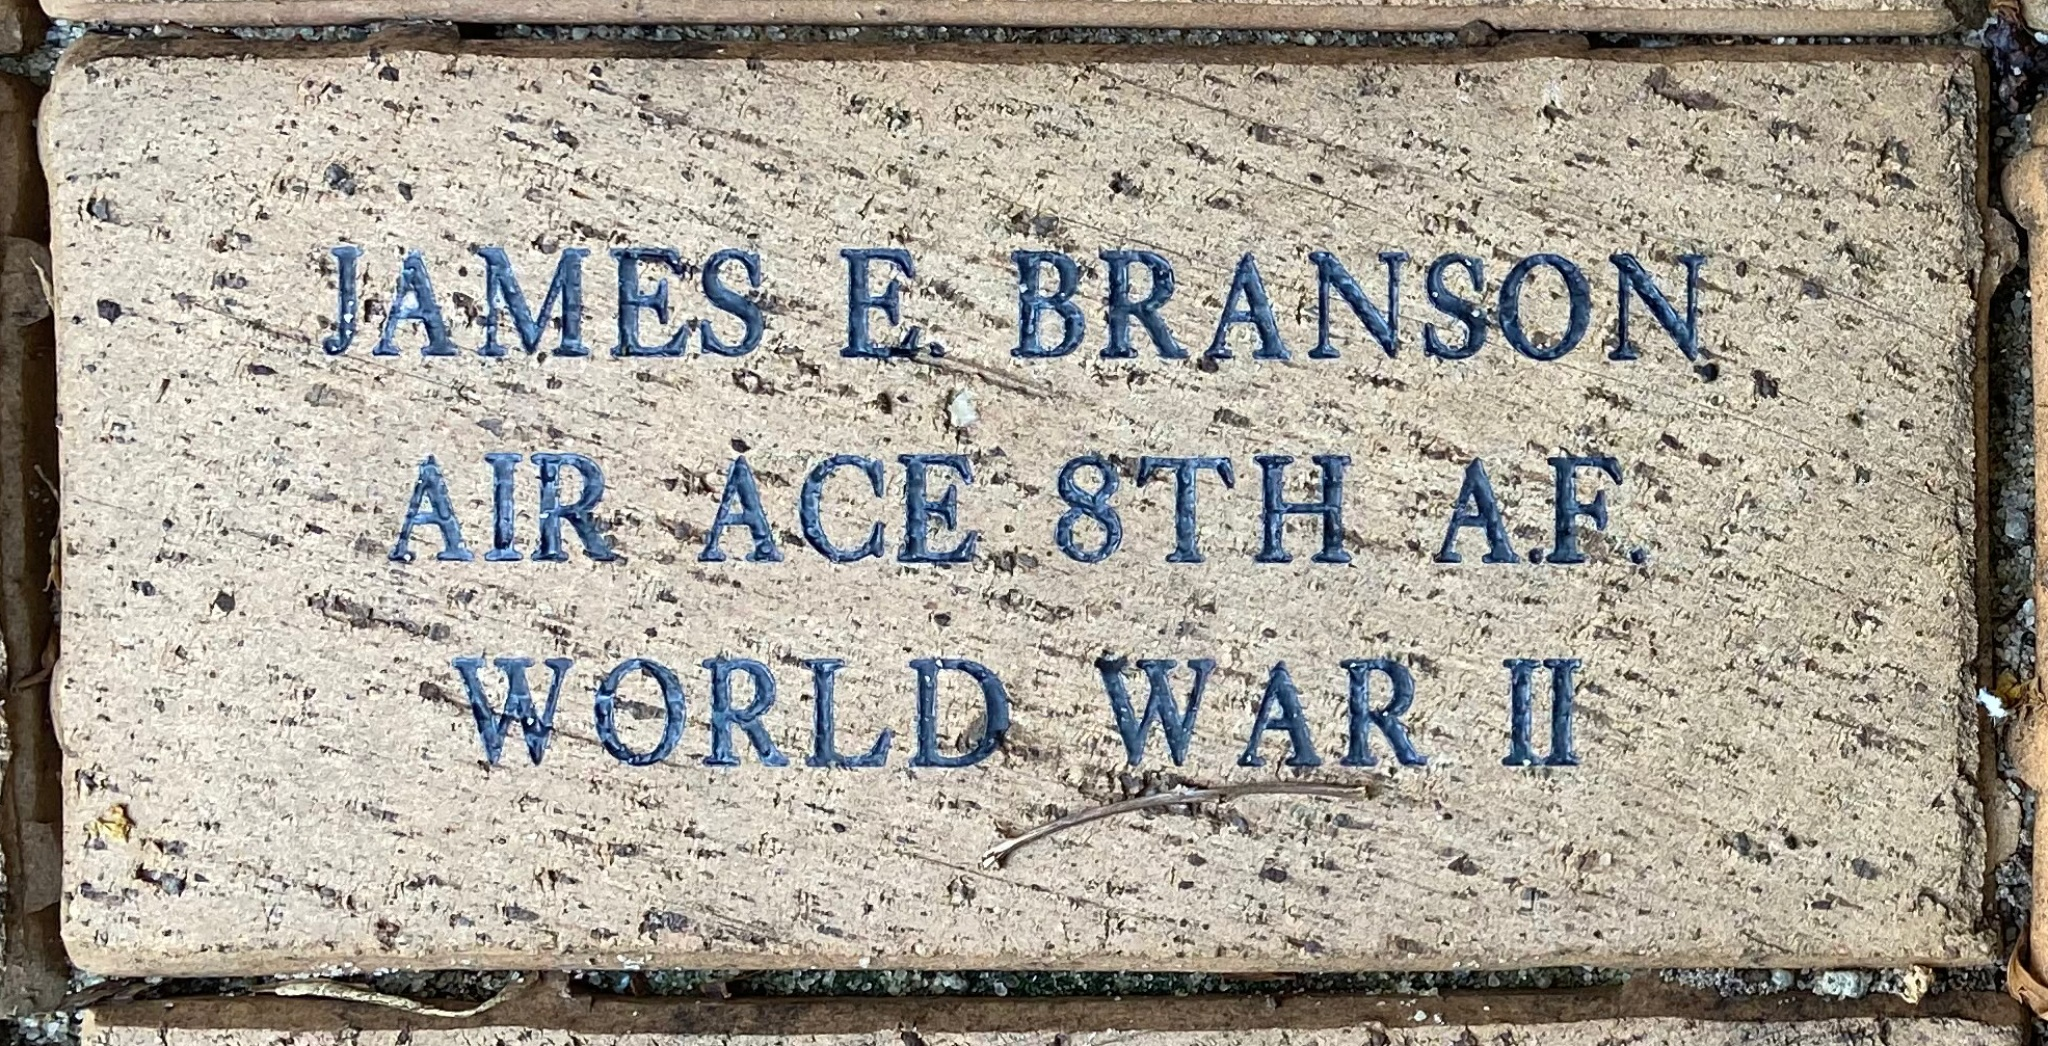 JAMES E. BRANSON AIR ACE 8TH A.F. WORLD WAR II